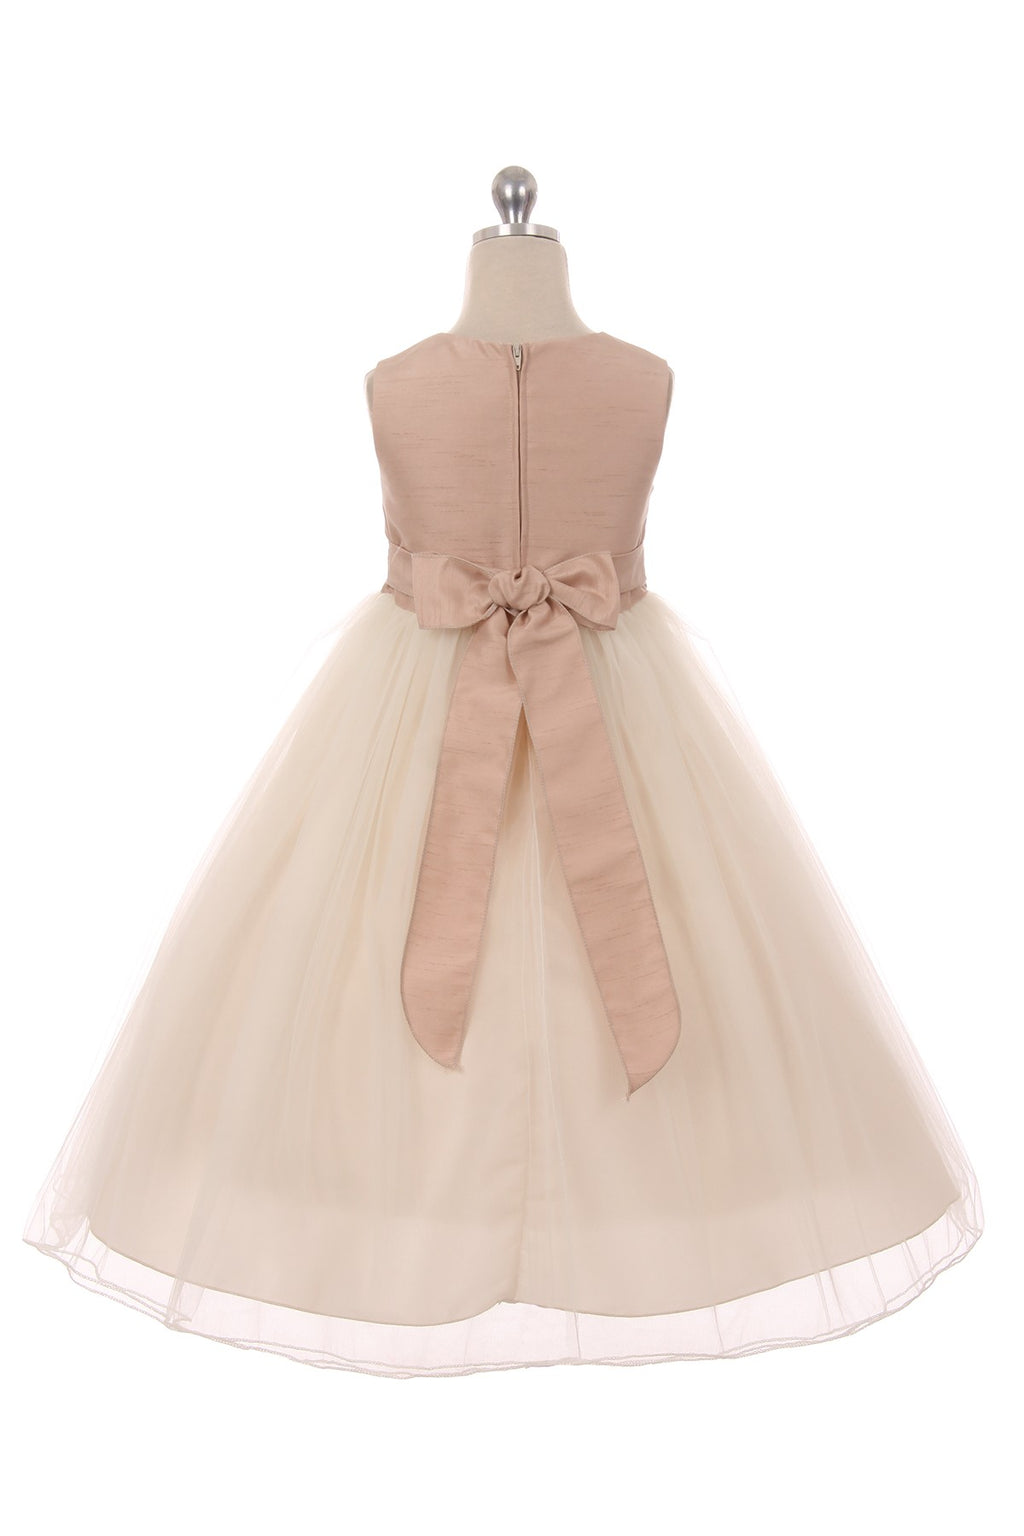 Dusty rose and ivory flower girl dress with bow and 3 flowers at waist